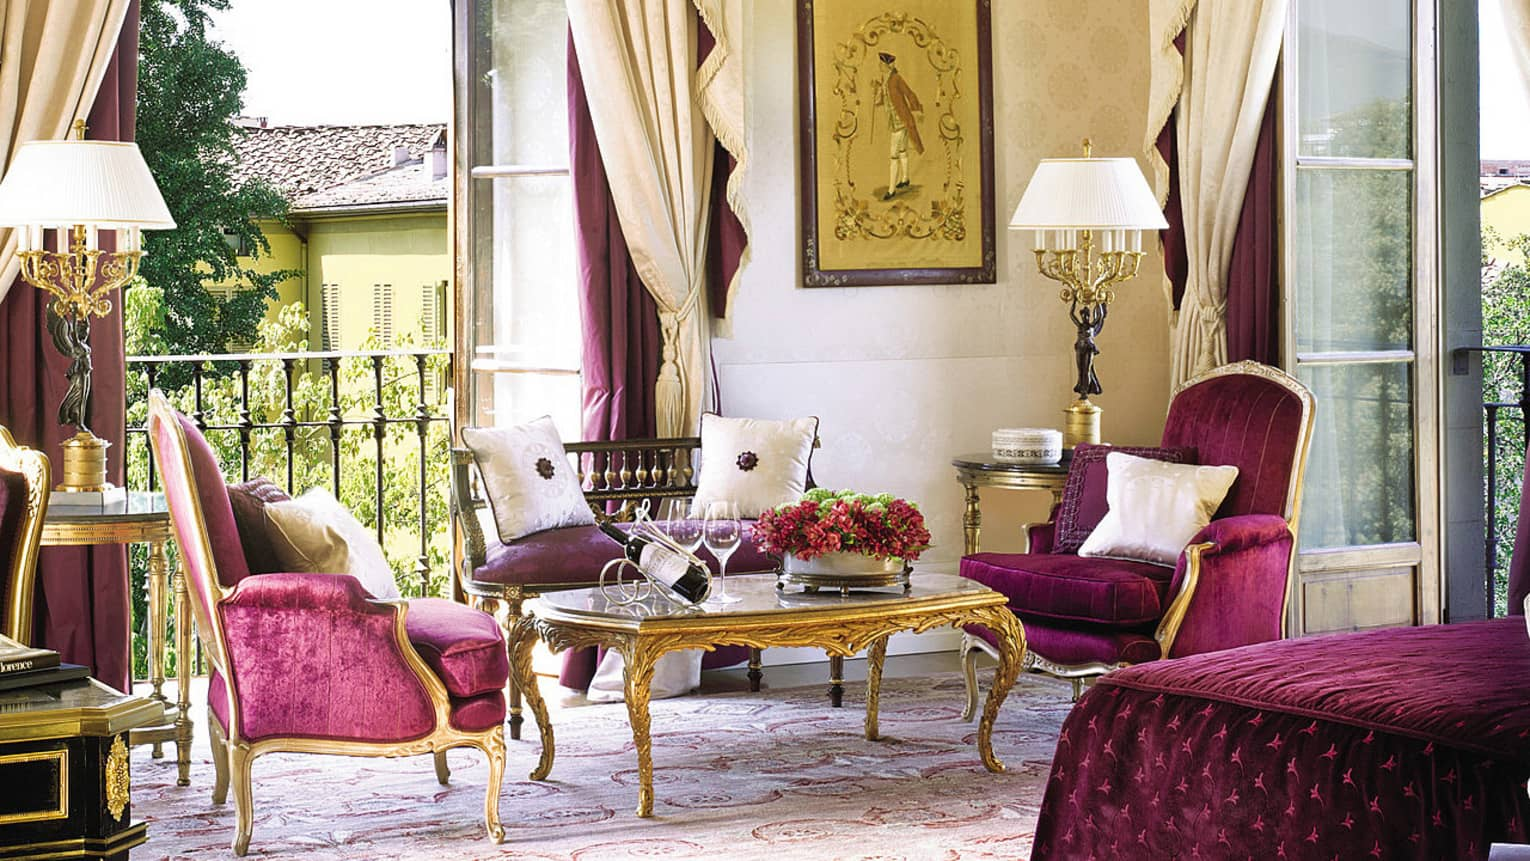 Presidential Suite De' Medici purple velvet armchairs, loveseat, open balcony doors